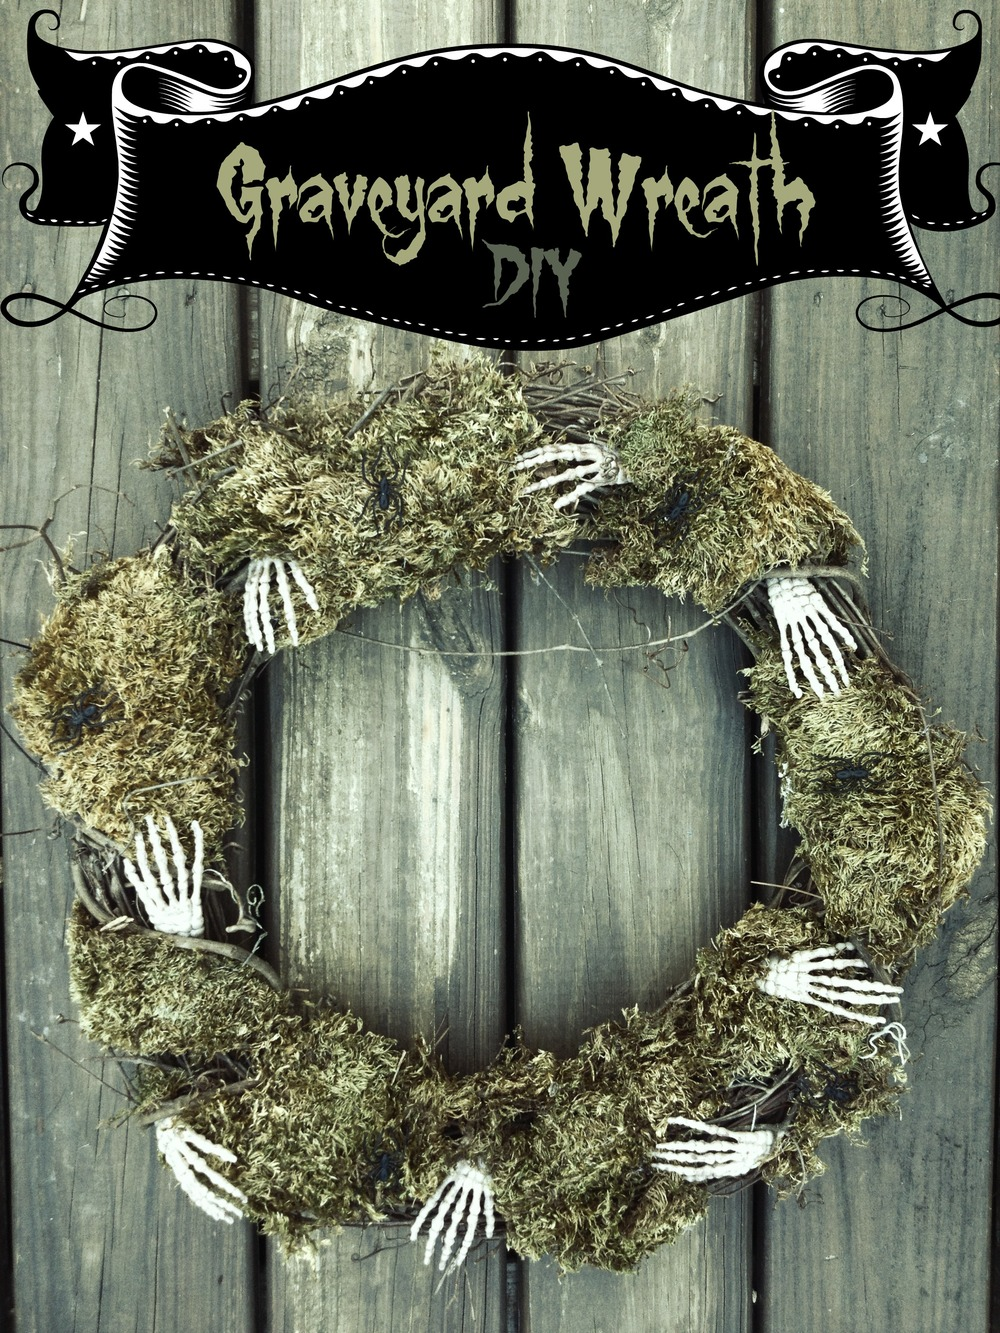 graveyard wreath